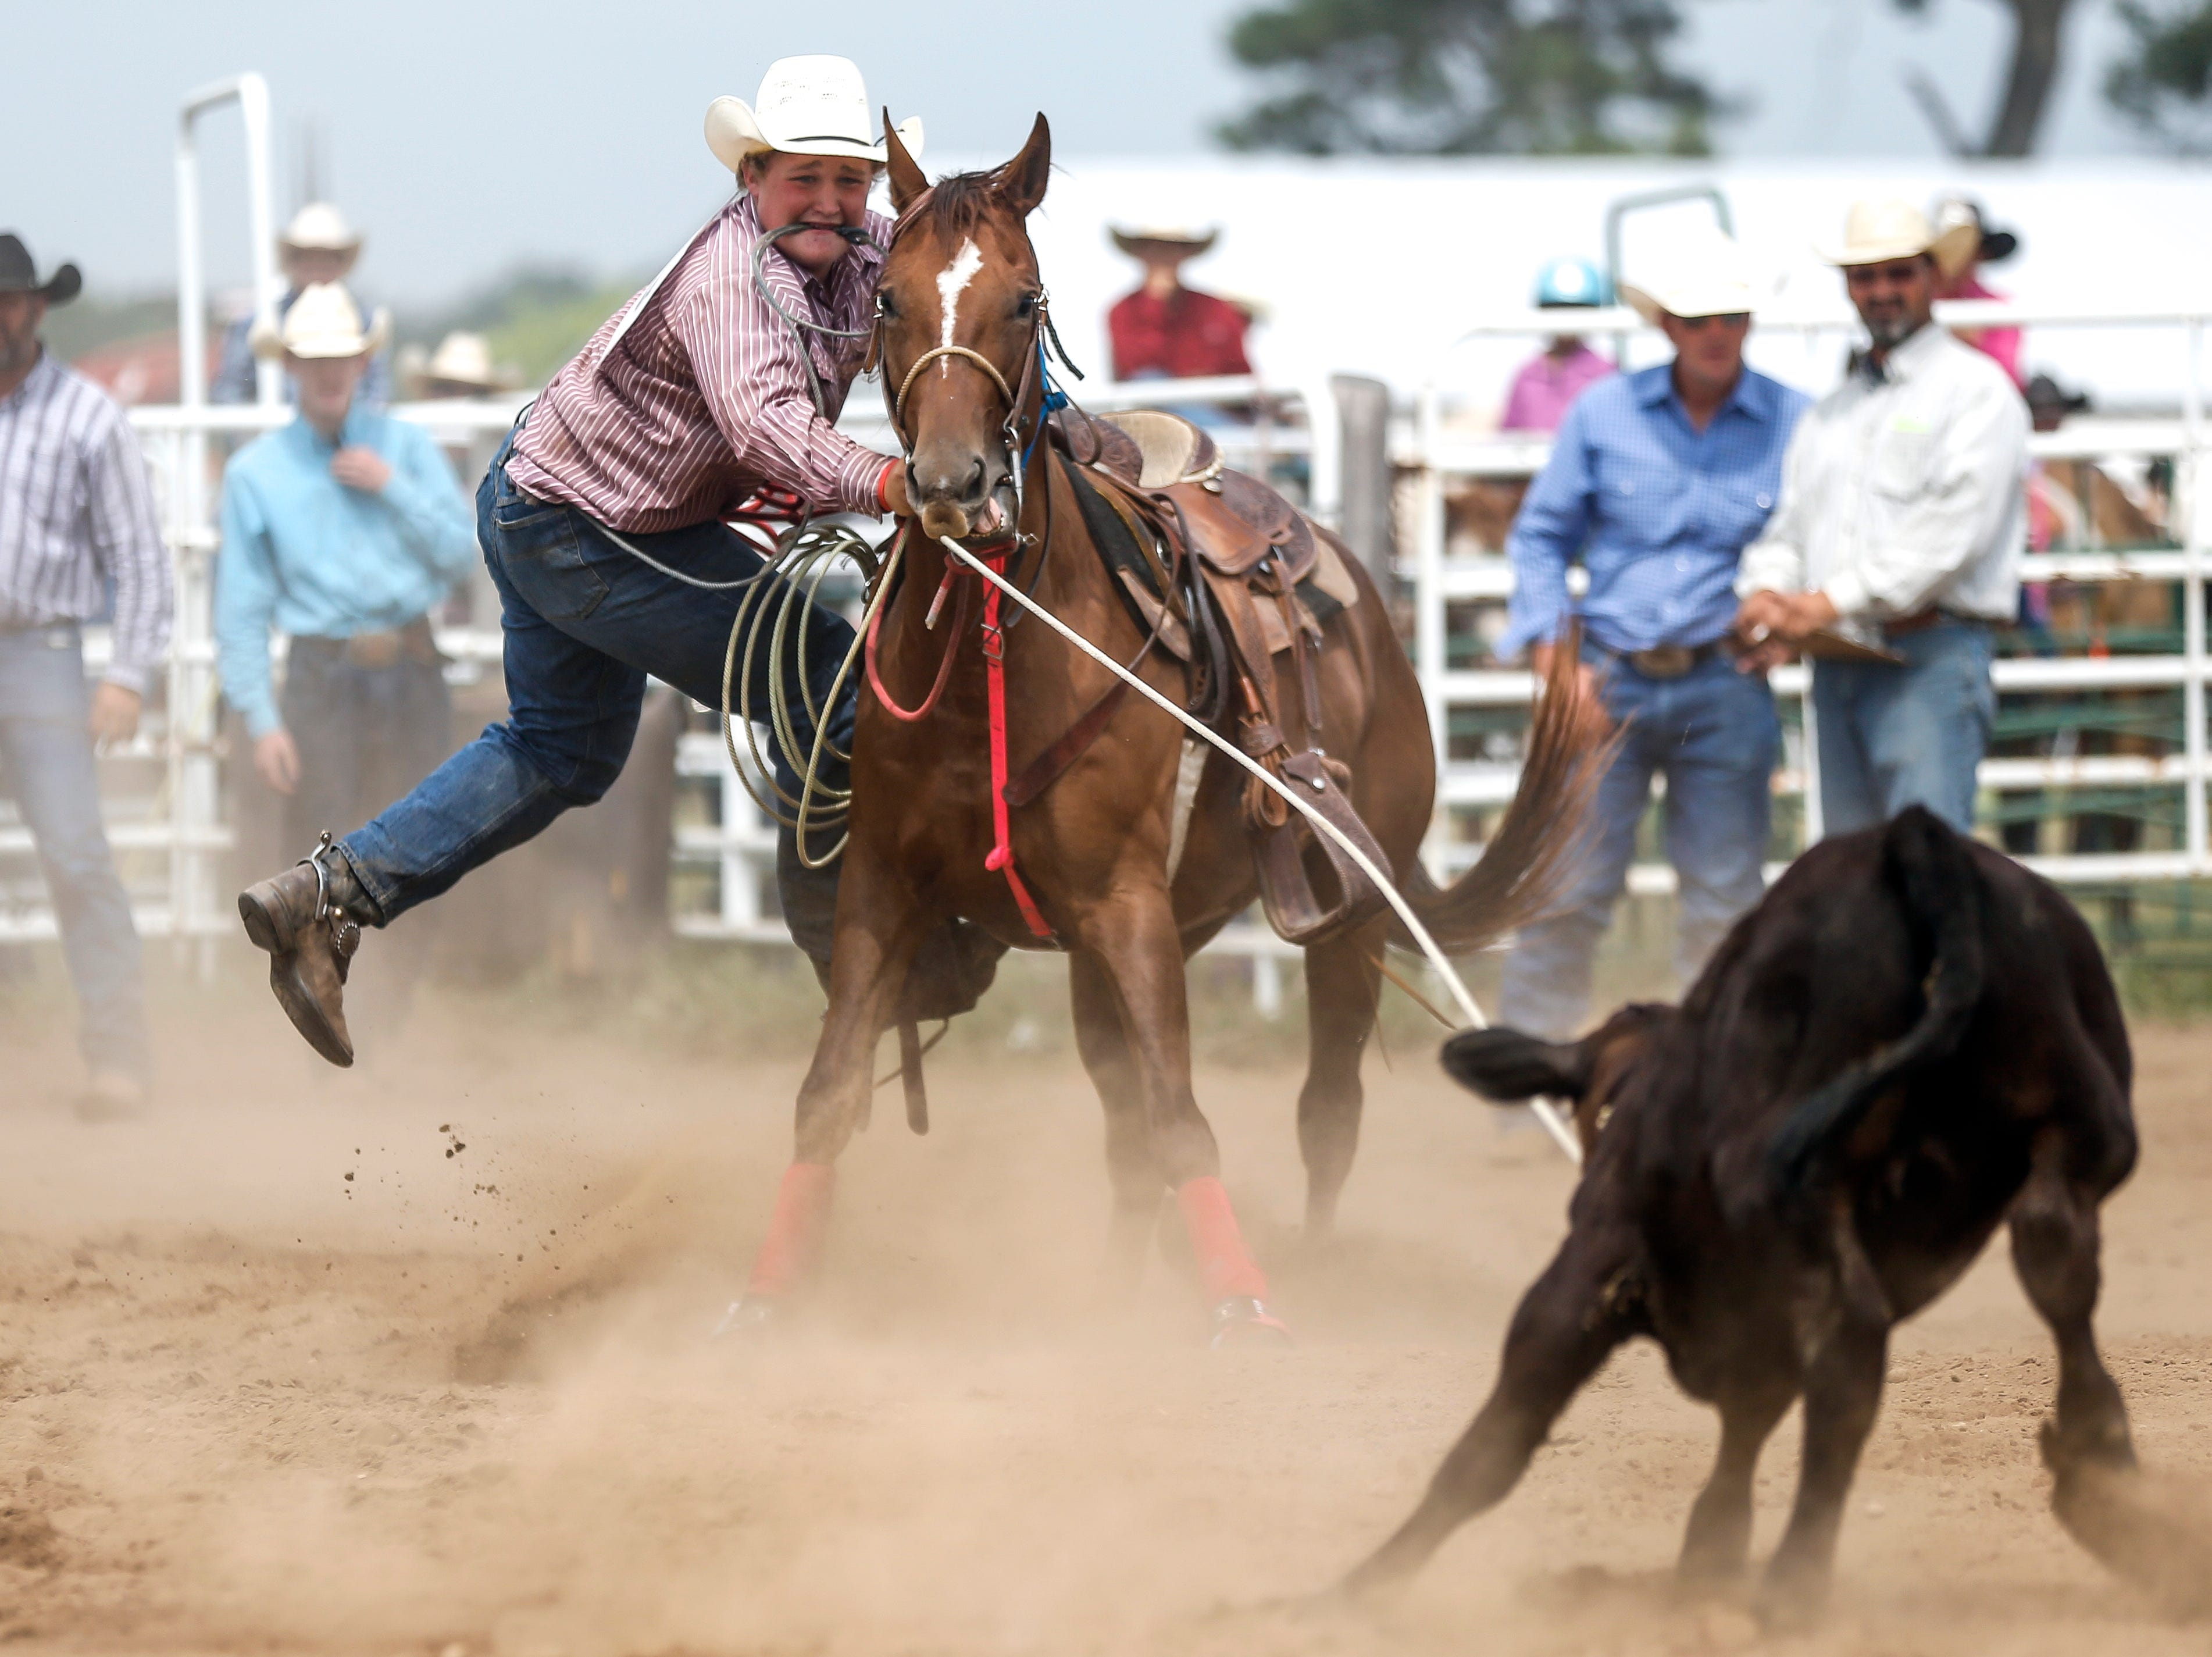 A competitor jumps off his horse after roping a calf during the Amherst Little Britches Wisconsin Rodeo in Amherst, Wis., August 17, 2018.